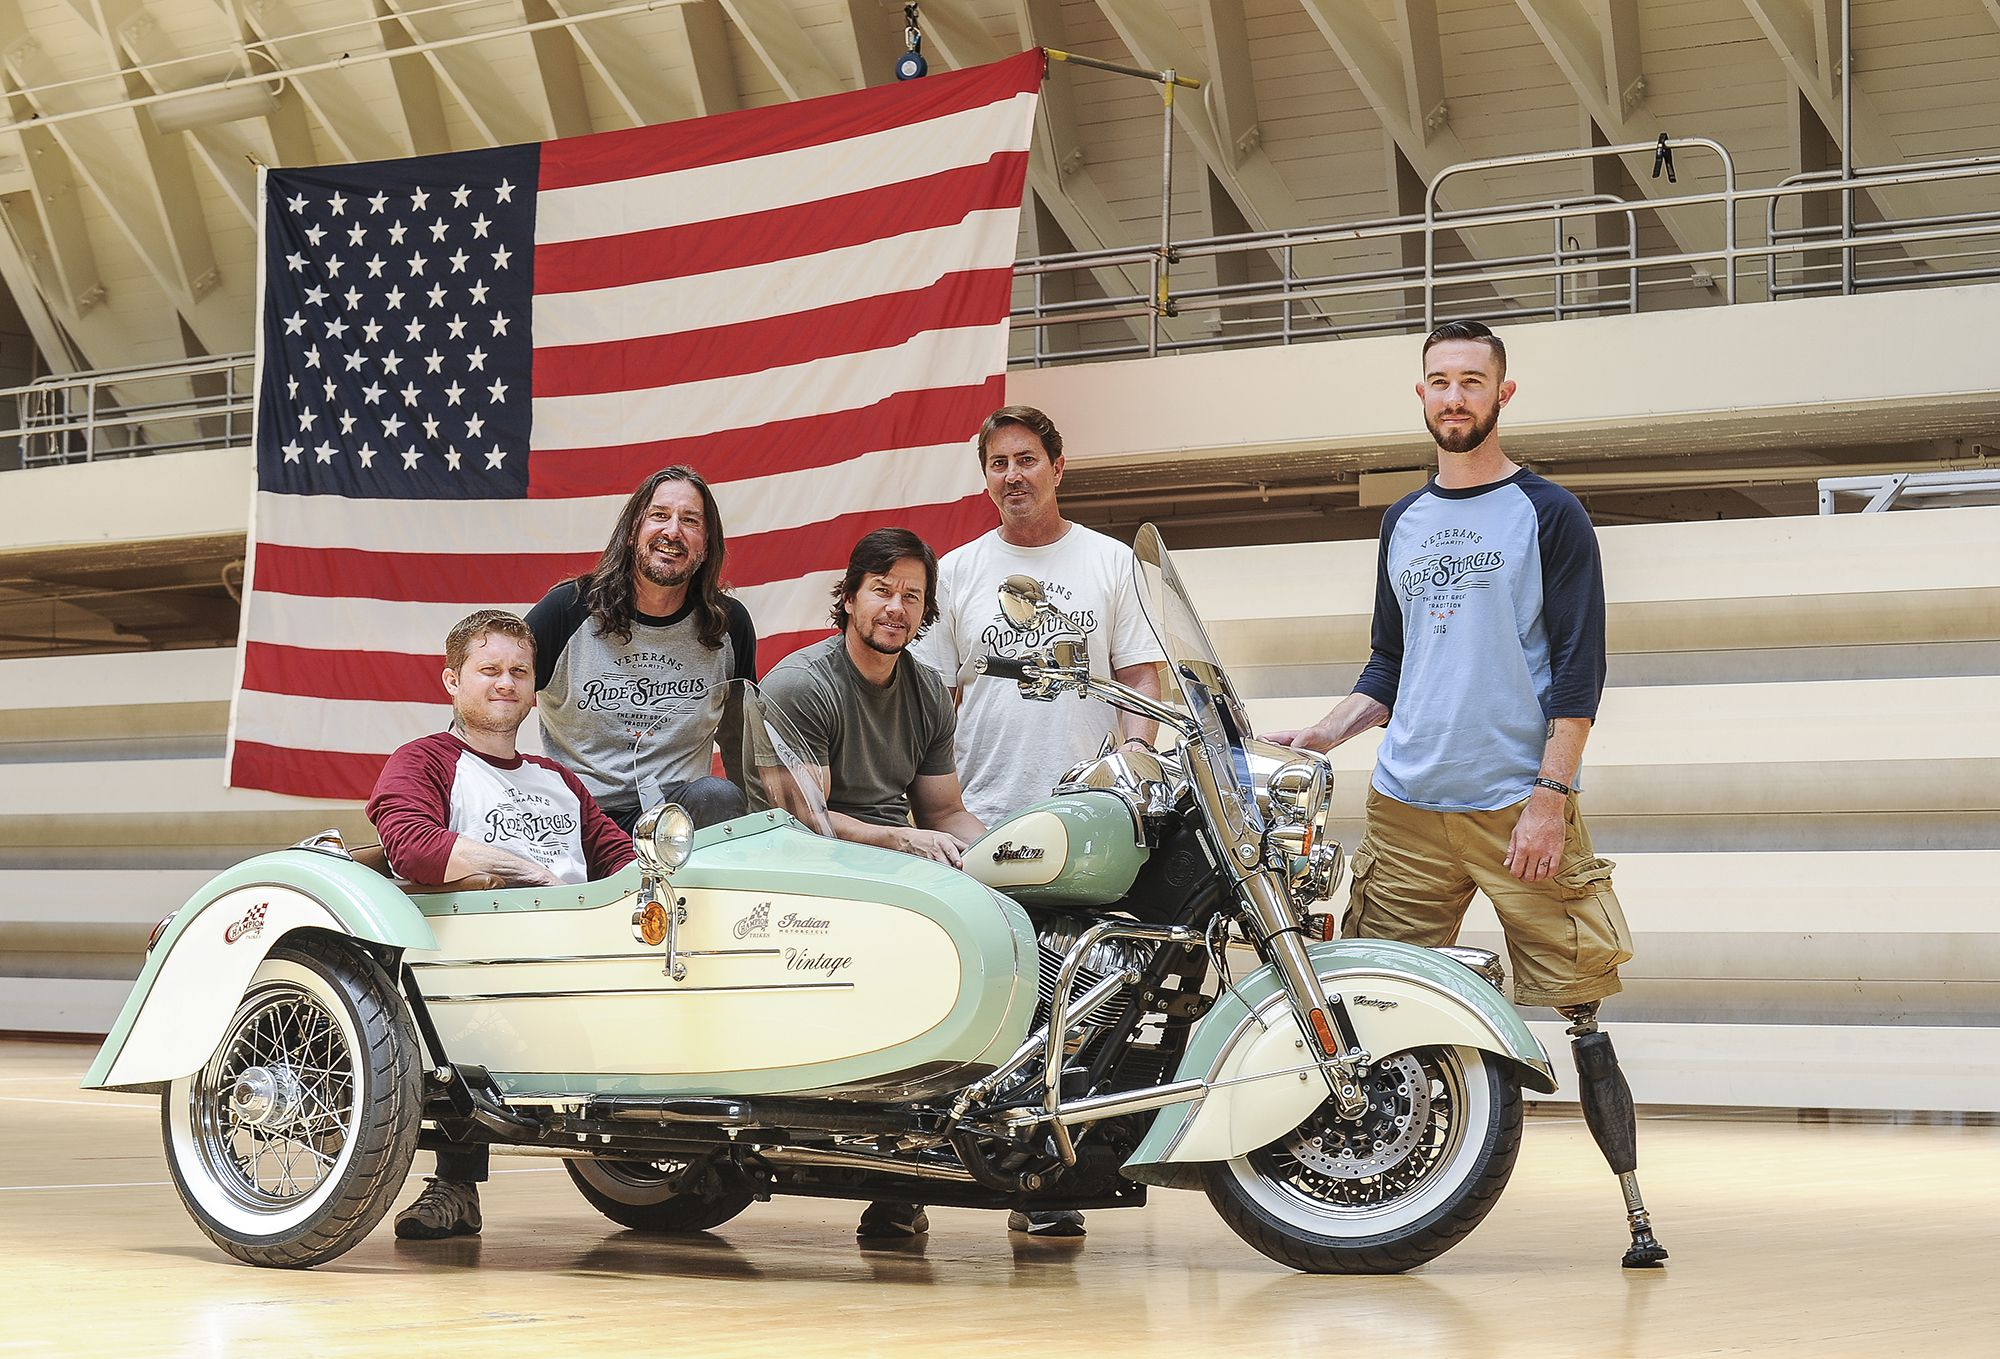 """<strong>Actor/Producer/Singer Mark Wahlberg:</strong> Moto enthusiast Mark Wahlberg lent his support a couple years back for the Veterans Charity Ride to Sturgis and has since been an ambassador for Indian Motorcycles. In a <a   href=""""https://wwd.com/eye/people/mark-wahlberg-talks-new-indian-motorcycle-collection-8227333/"""">WWD interview</a>, Wahlberg stated that he """"rode around a lot when I was a kid, but you know, not often enough,"""" and further, """"It's great because my sons like to ride little 50s [dirt bikes], and we live in a gated community so we ride around the neighborhood. If I am given the okay, I love riding around in the canyons."""""""